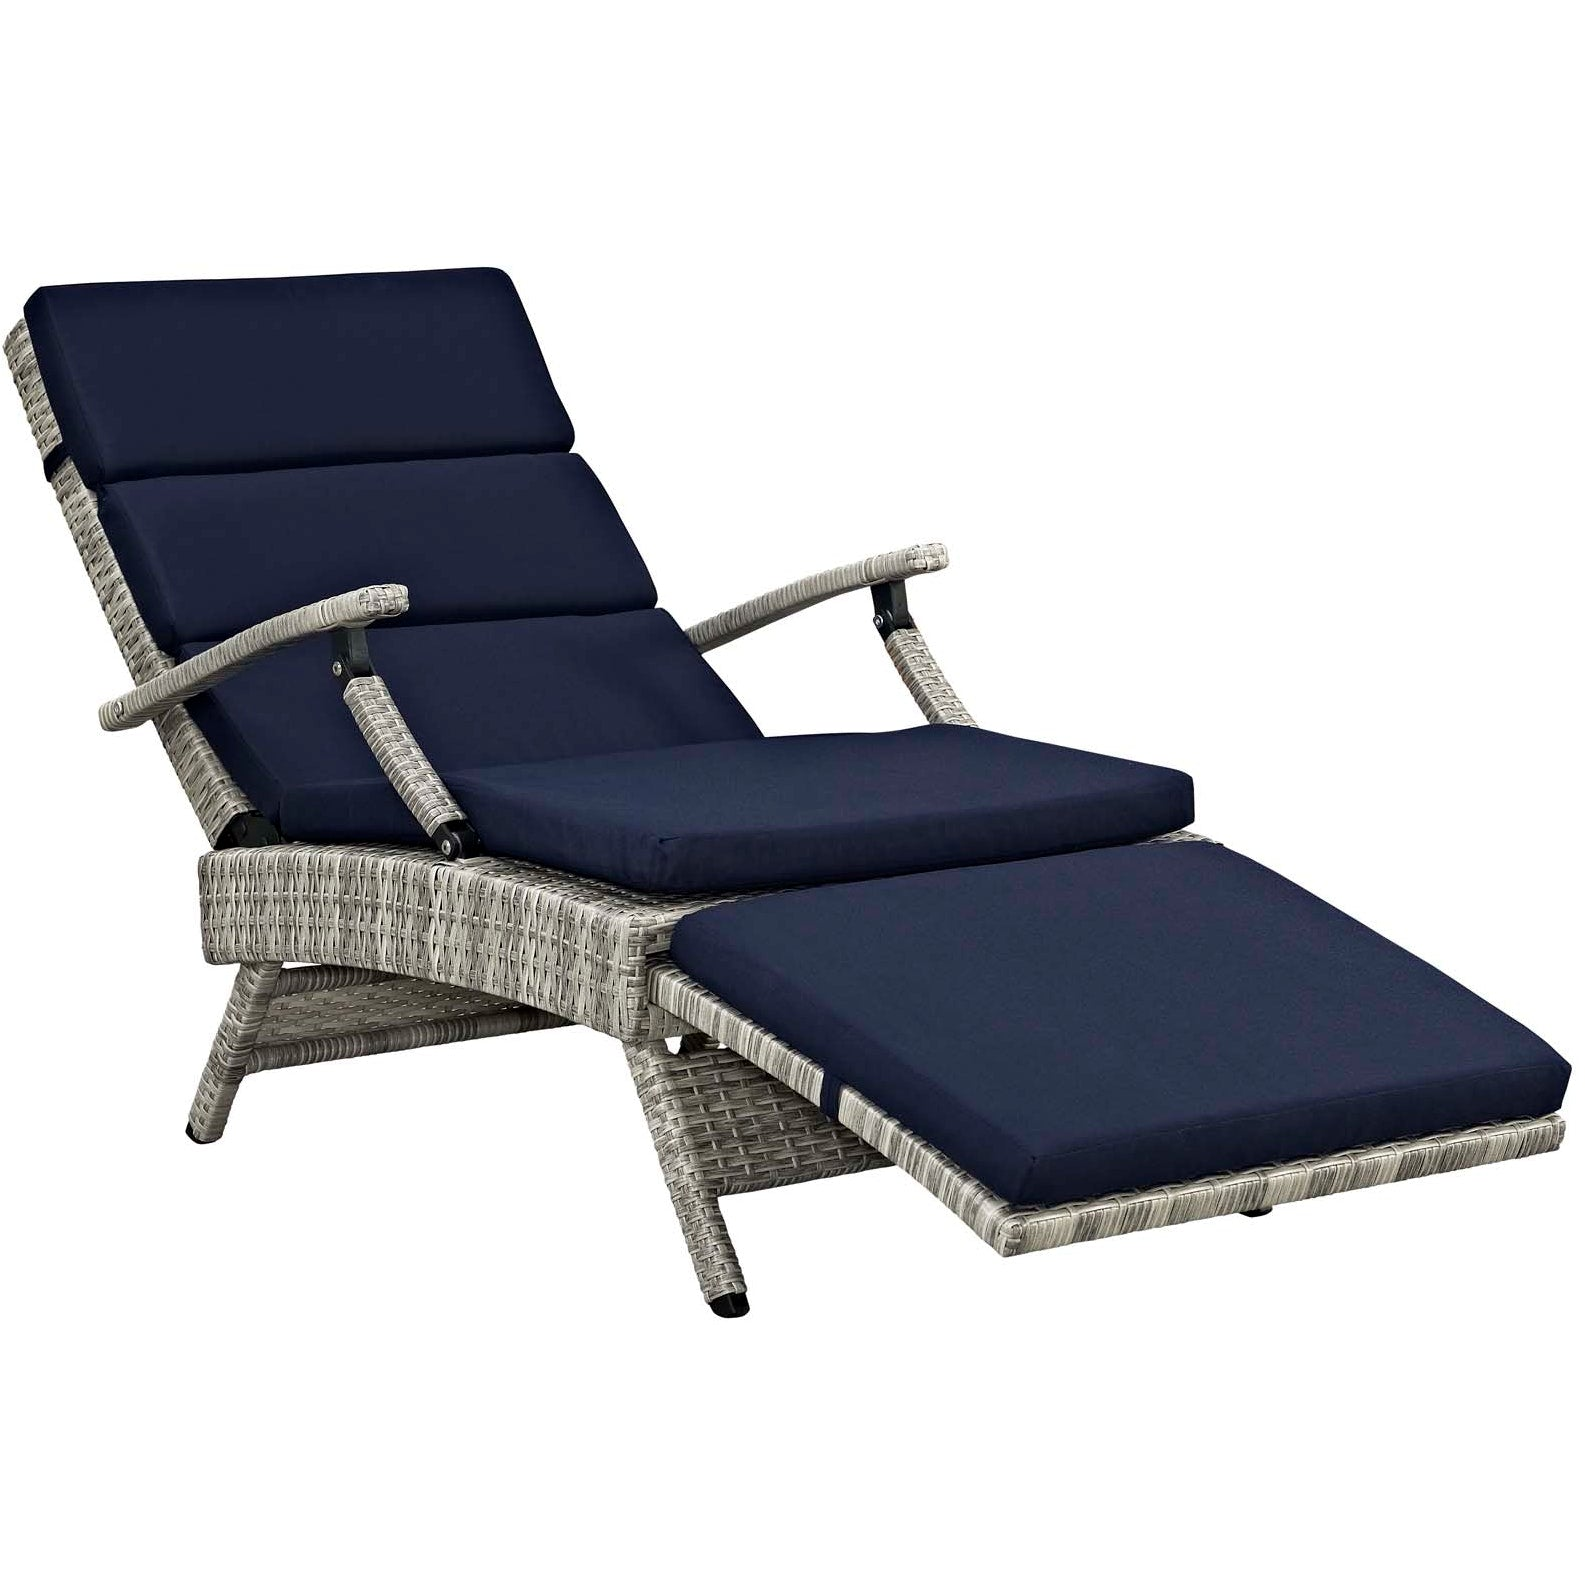 Envisage Chaise Outdoor Patio Wicker Rattan Lounge Chair - Light Gray Navy